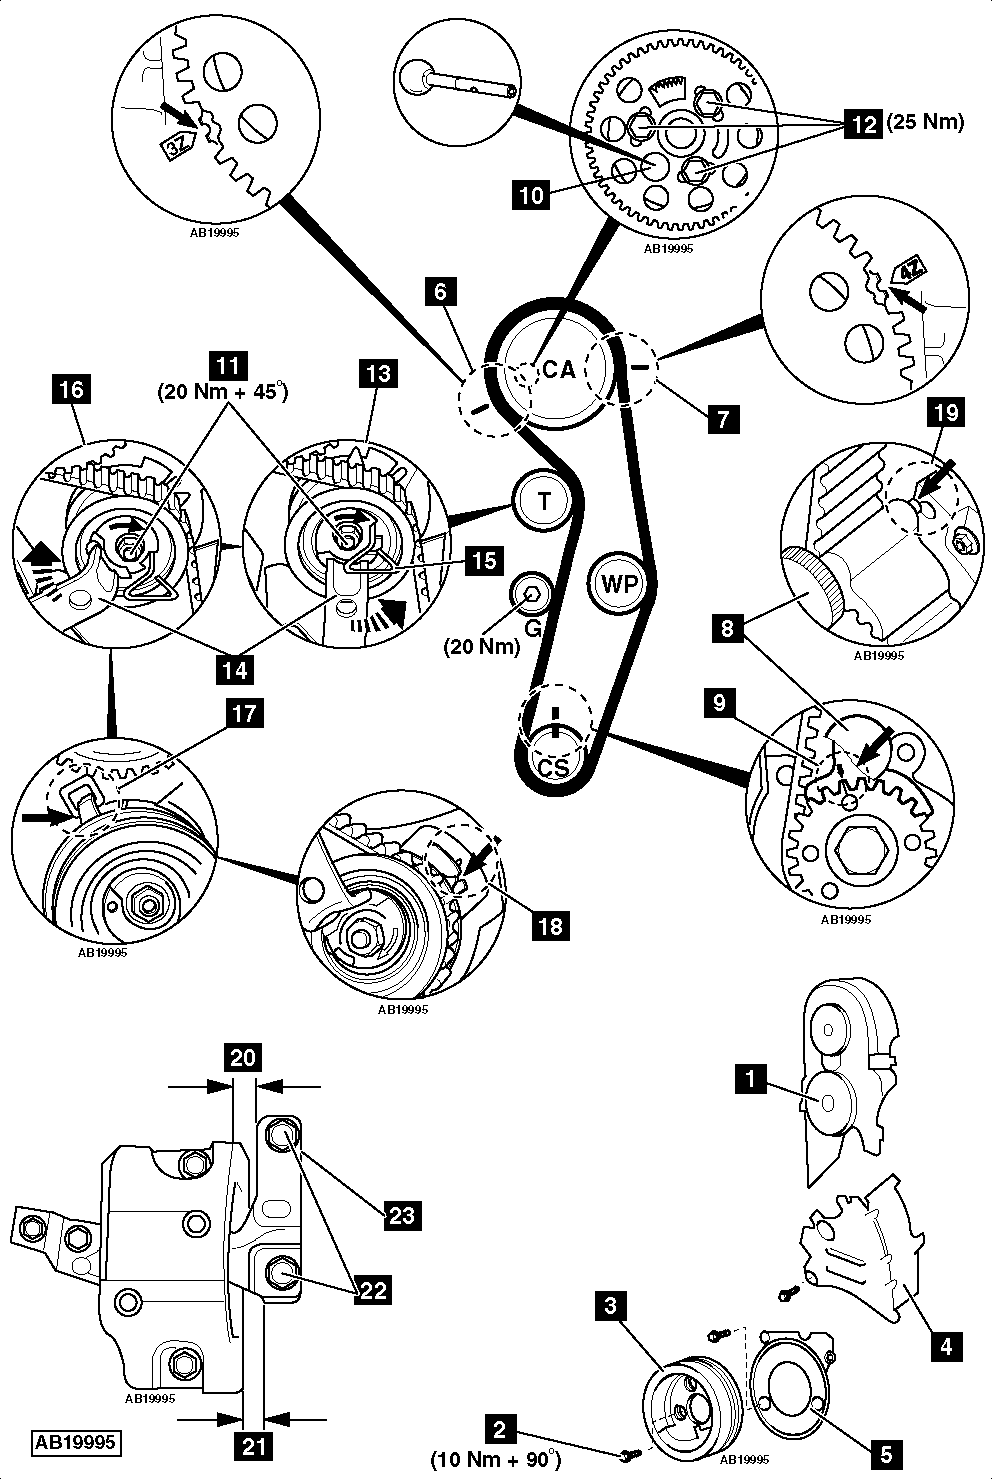 medium resolution of 19 tdi engine diagram wiring library vectra 1 9 cdti engine diagram 1 9 tdi engine diagram